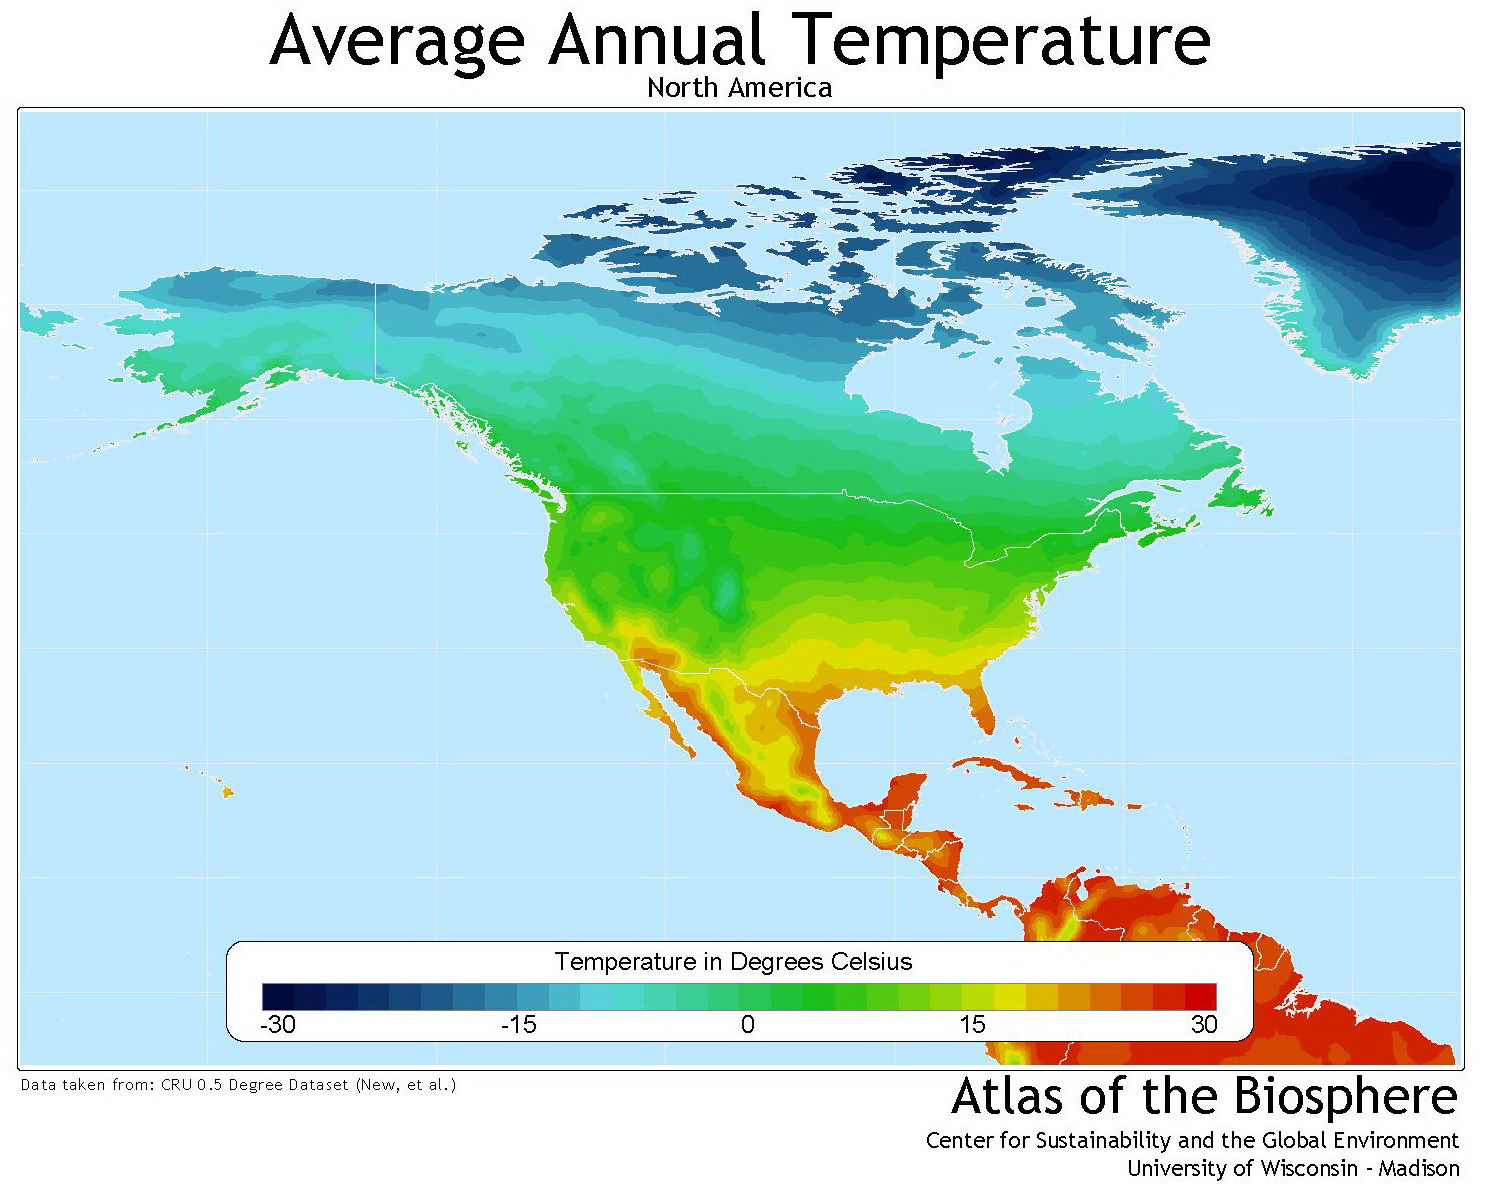 North America average annual temperature